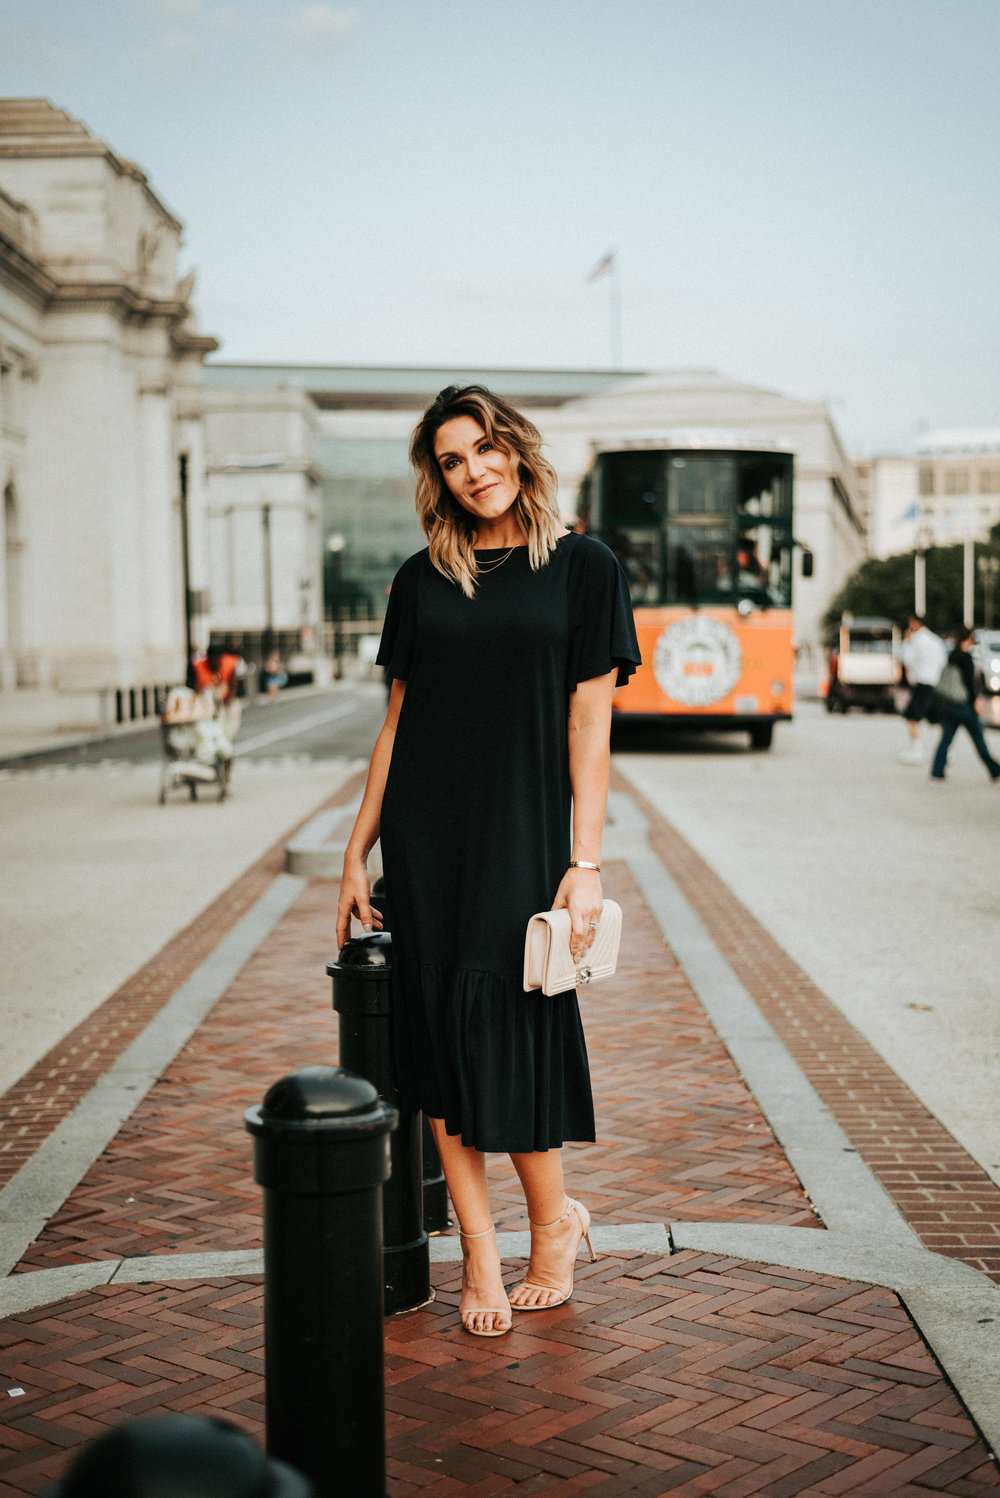 beautiful woman stands outside union station in downtown washington DC